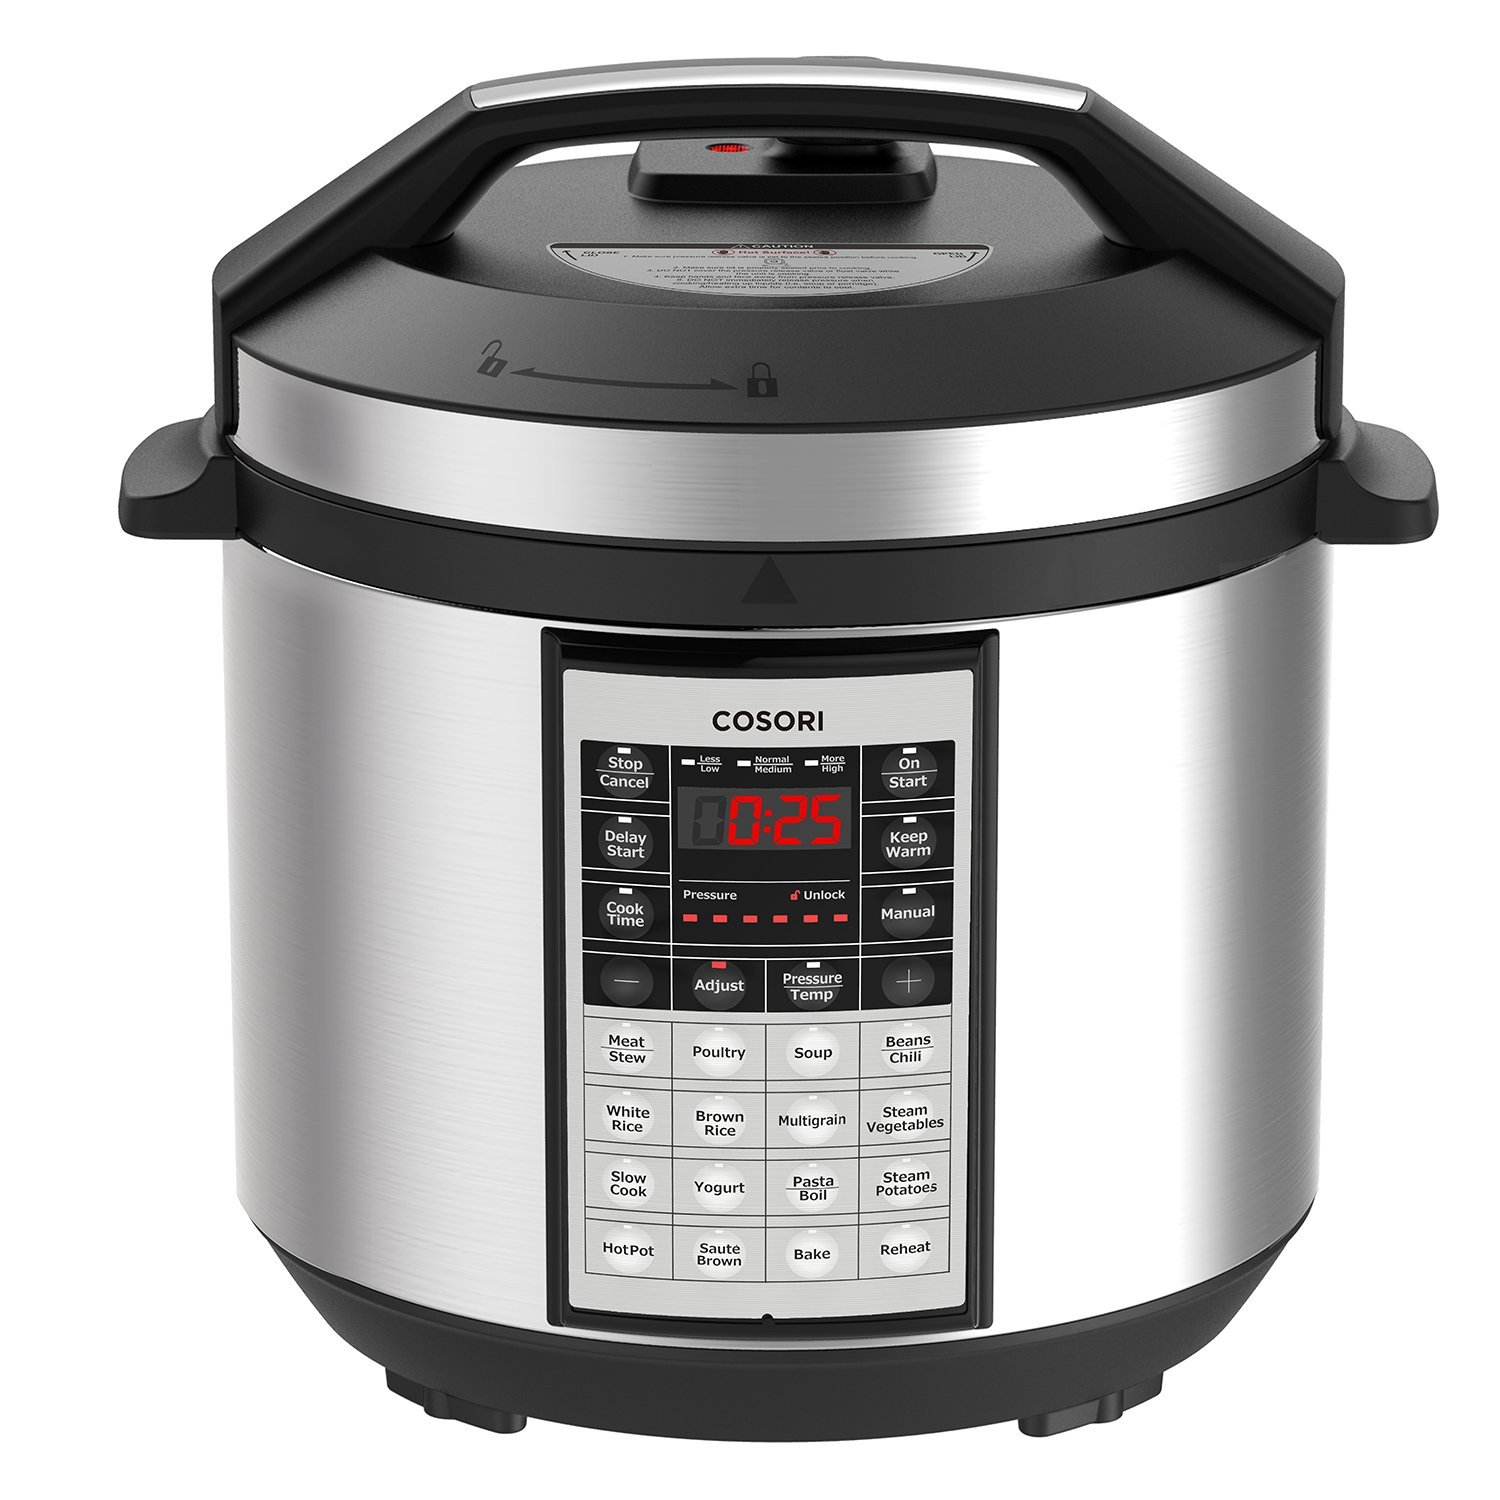 COSORI 6 Qt Premium 8-in-1 Programmable Multi-Cooker (Pressure Cooker, Rice Cooker, Steamer, Warmer, Etc.), 1000W, Includes Glass Lid, Sealing Ring and Recipe Book